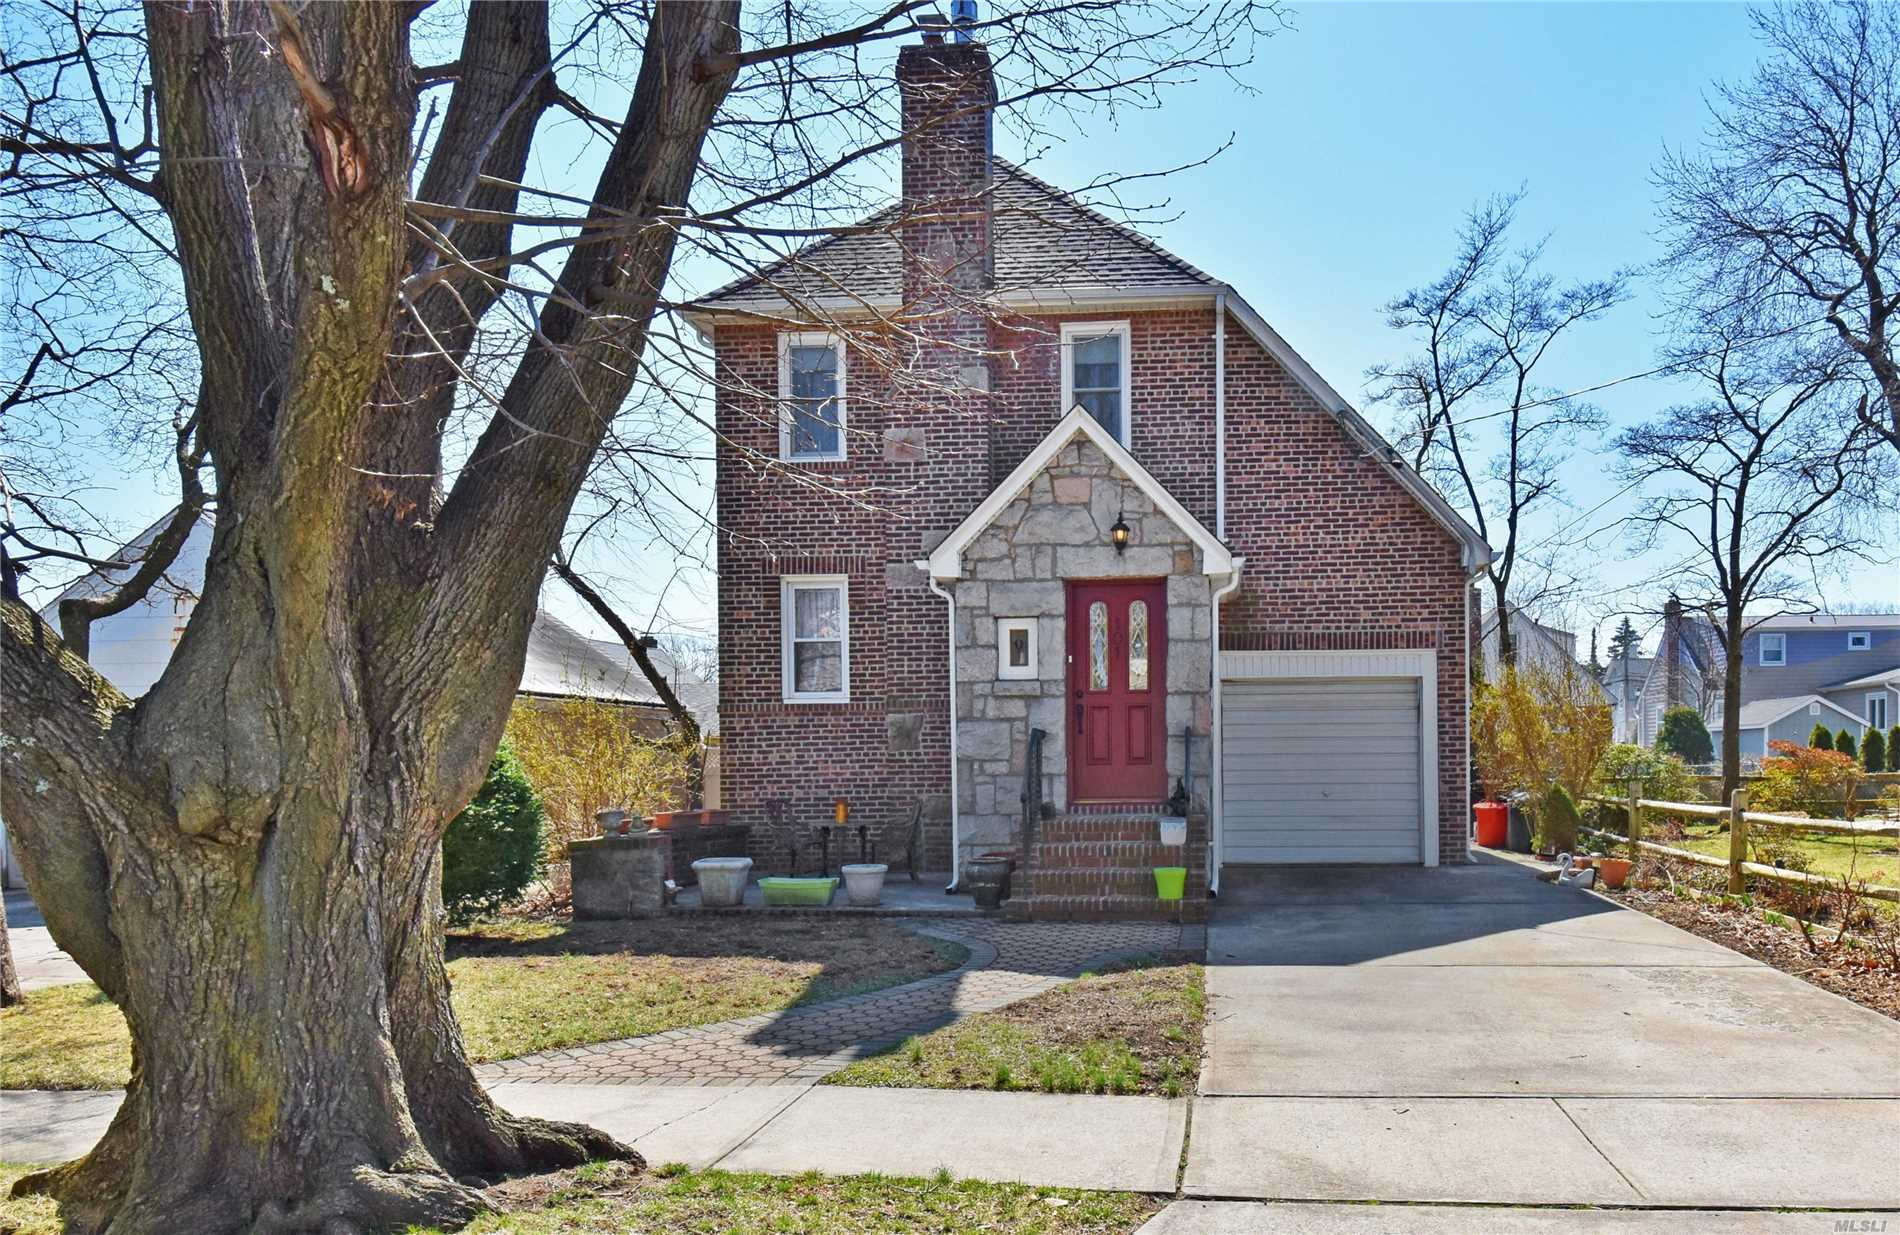 Beautiful brick colonial located in the heart of Mineola. Absolutely Move in Condition. 3 bdrm, 1fbth and 1/4 bth. Mdrm has 2 lg closets. The bath has been updated along with the kit which has granite and S/S appl's. The Lrm has stone fplc with gas insert.The stairway is stained oak and All rooms have custom moldings and custom radiator covers. All windows are updated with energy efficient double pane. The front porch has concrete patio and rear yard have lovely pavers great for entertaining.